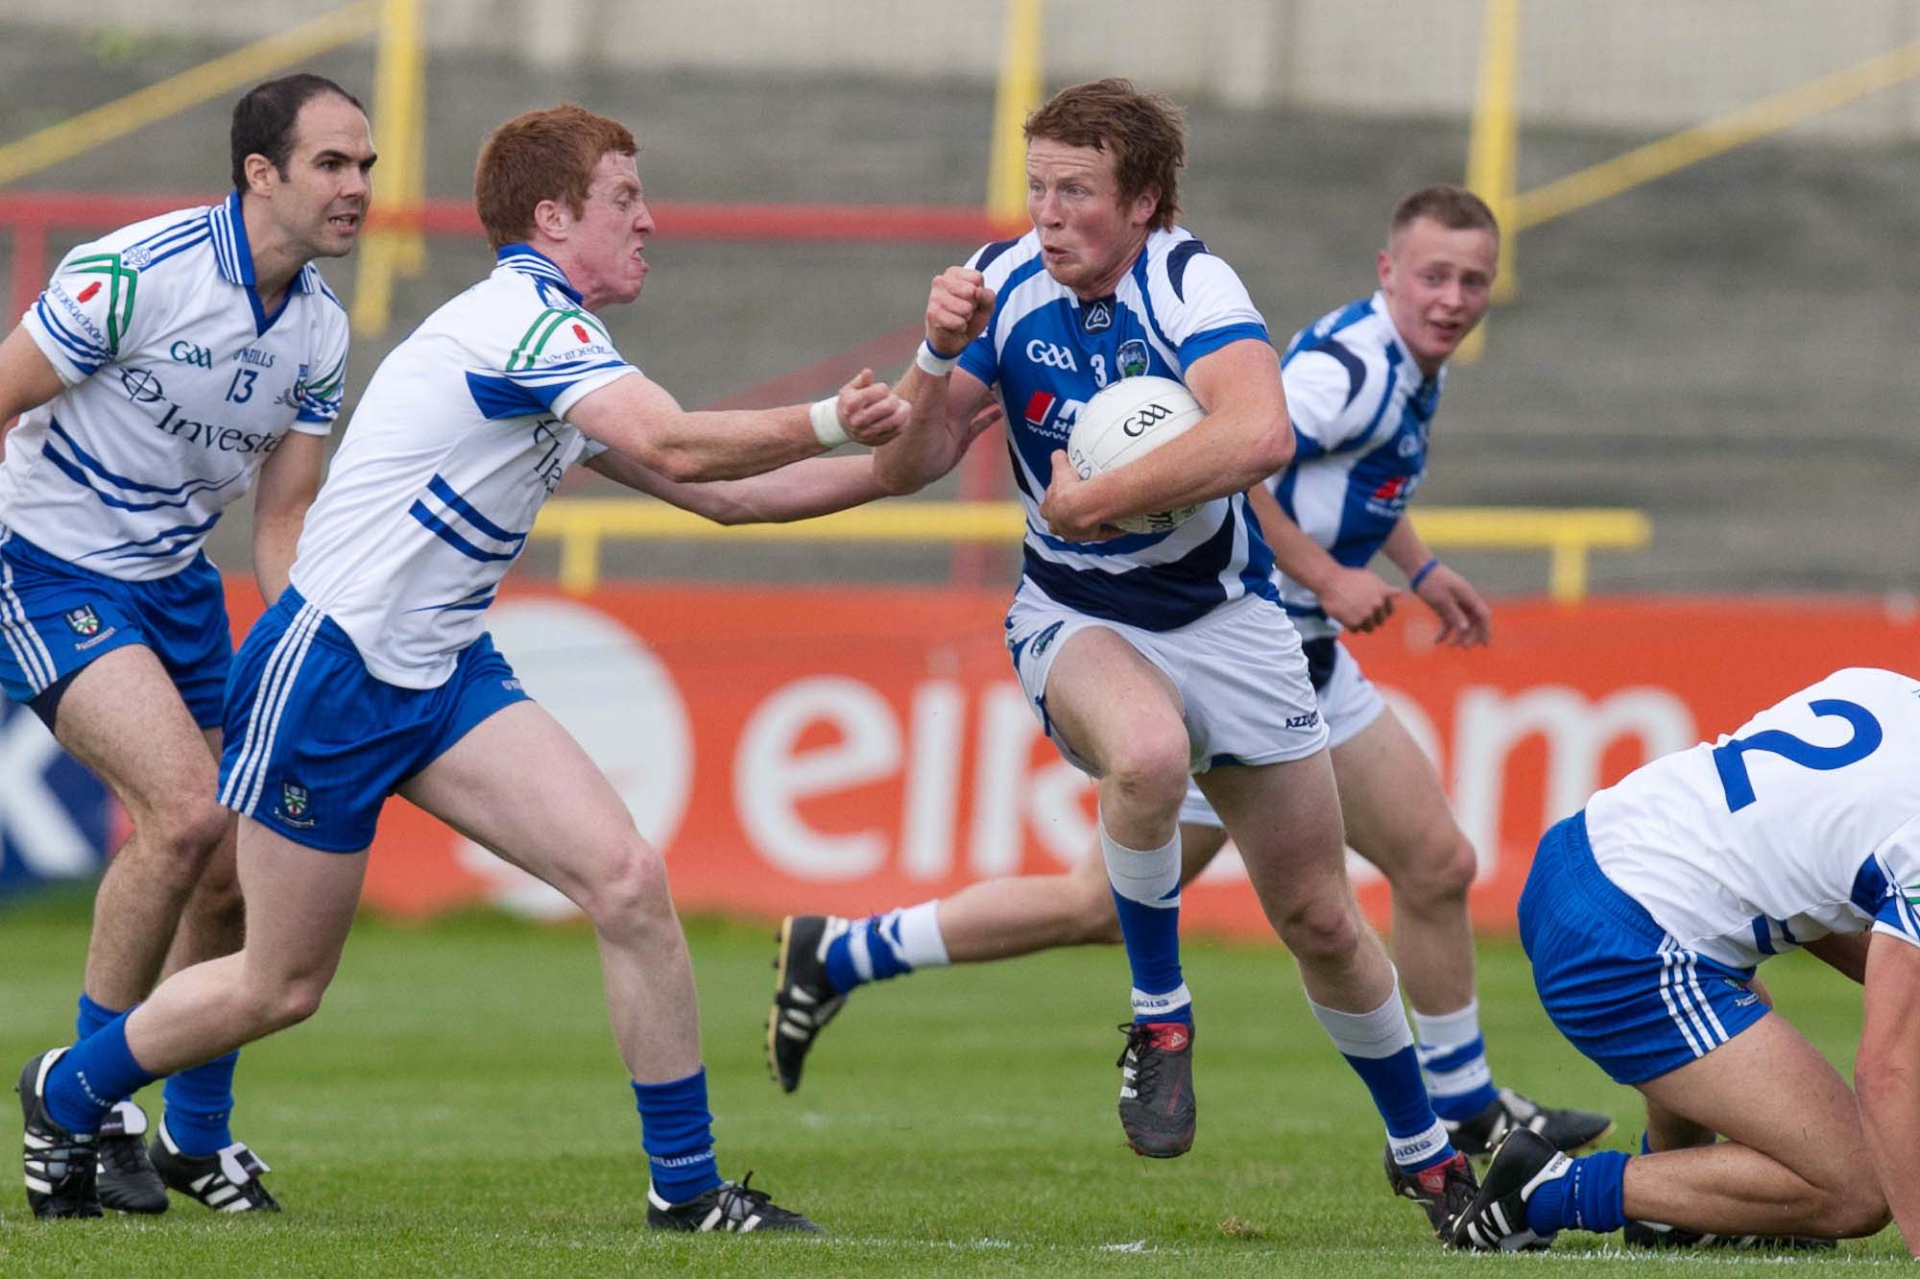 Kevin Meaney breaks out of defence